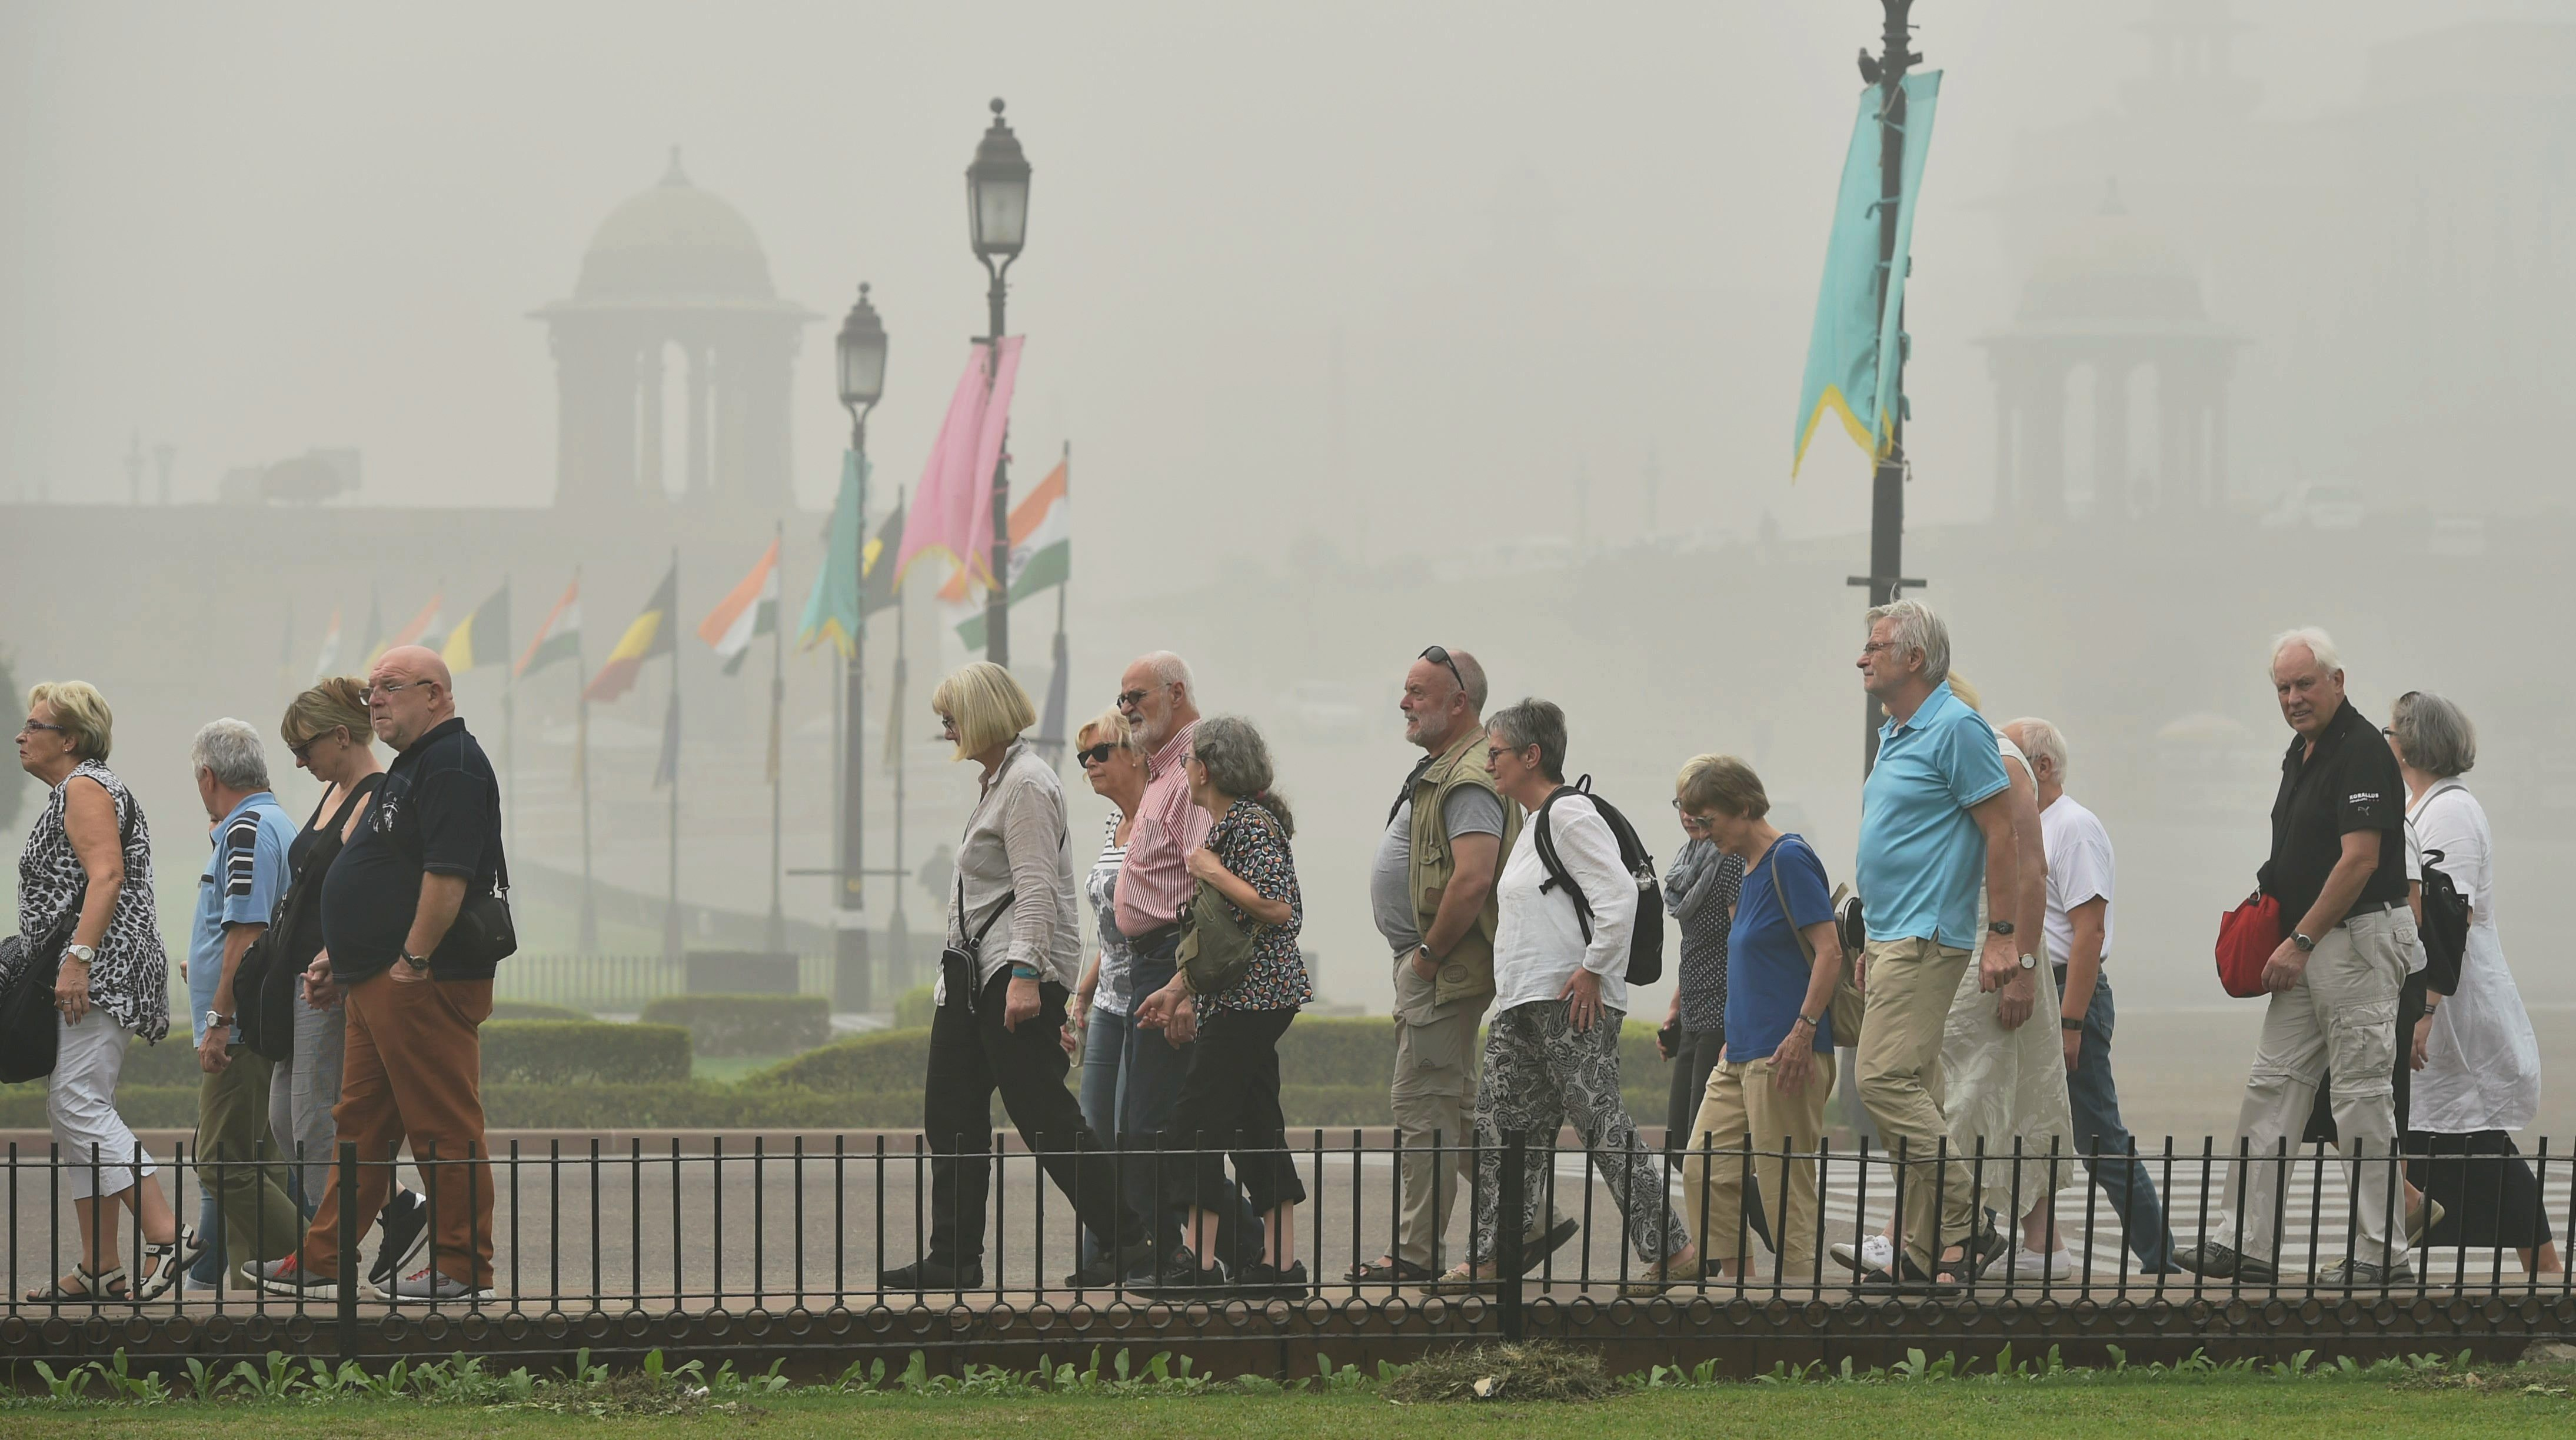 New Delhi: A group of foreign tourists at Vijay Chowk during heavy smog and air pollution in New Delhi on Wednesday. The smog and air pollution continue to be above the severe levels in Delhi NCR. PTI Photo by Vijay Verma(PTI11_8_2017_000092B)